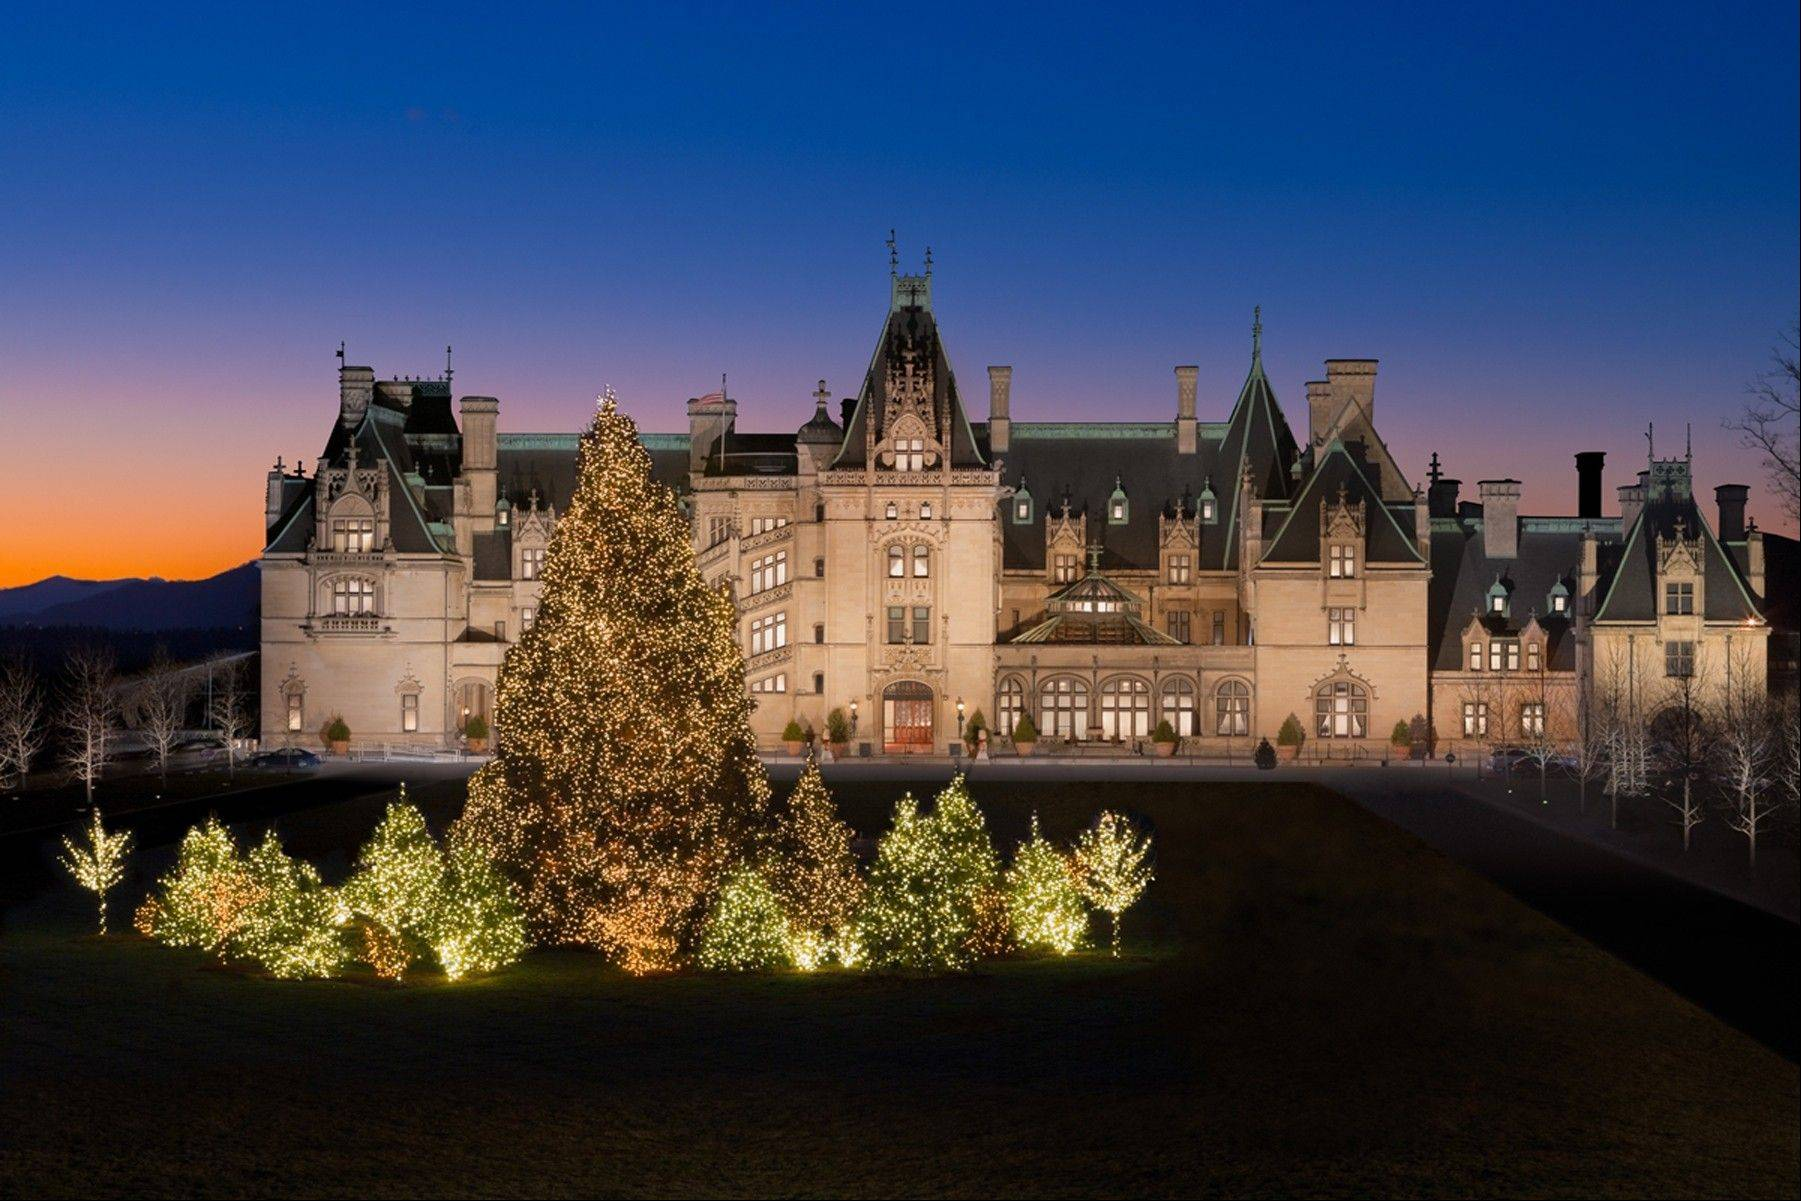 Holiday displays at the Biltmore in Asheville, N.C., will be up through Jan. 12.